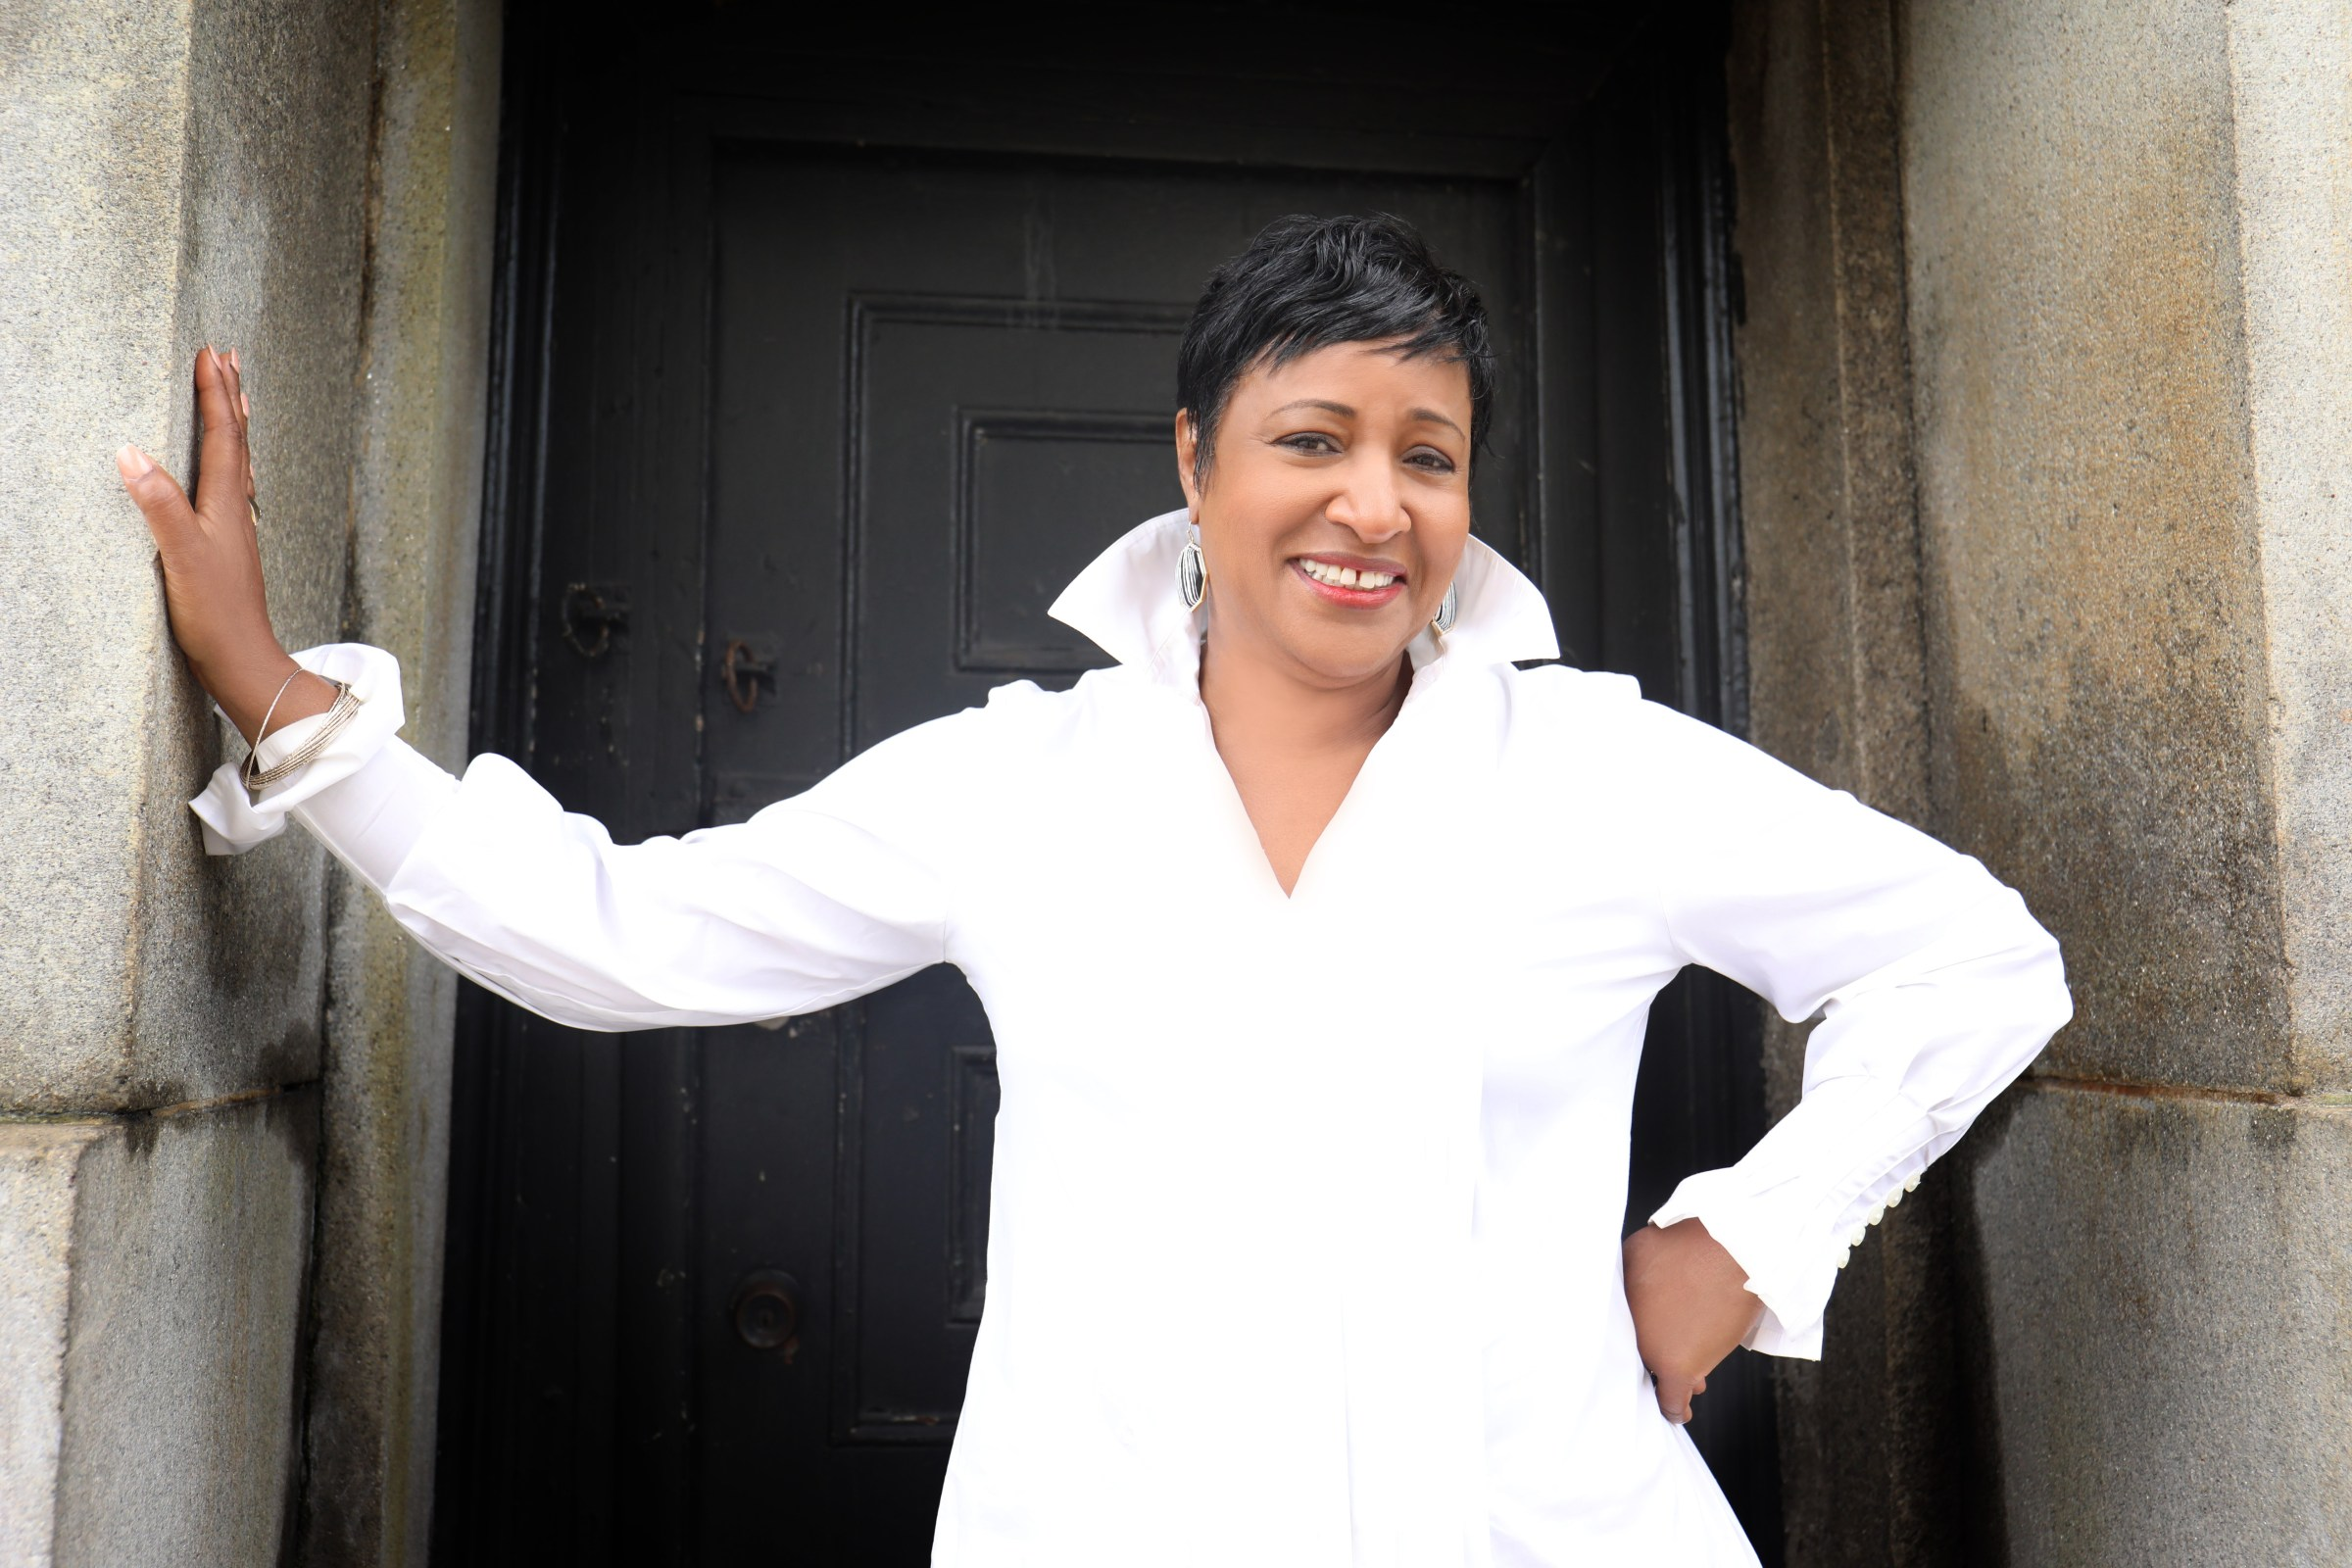 FEATURE: Vanessa Rubin Performs on WBGO's Singers Unlimited